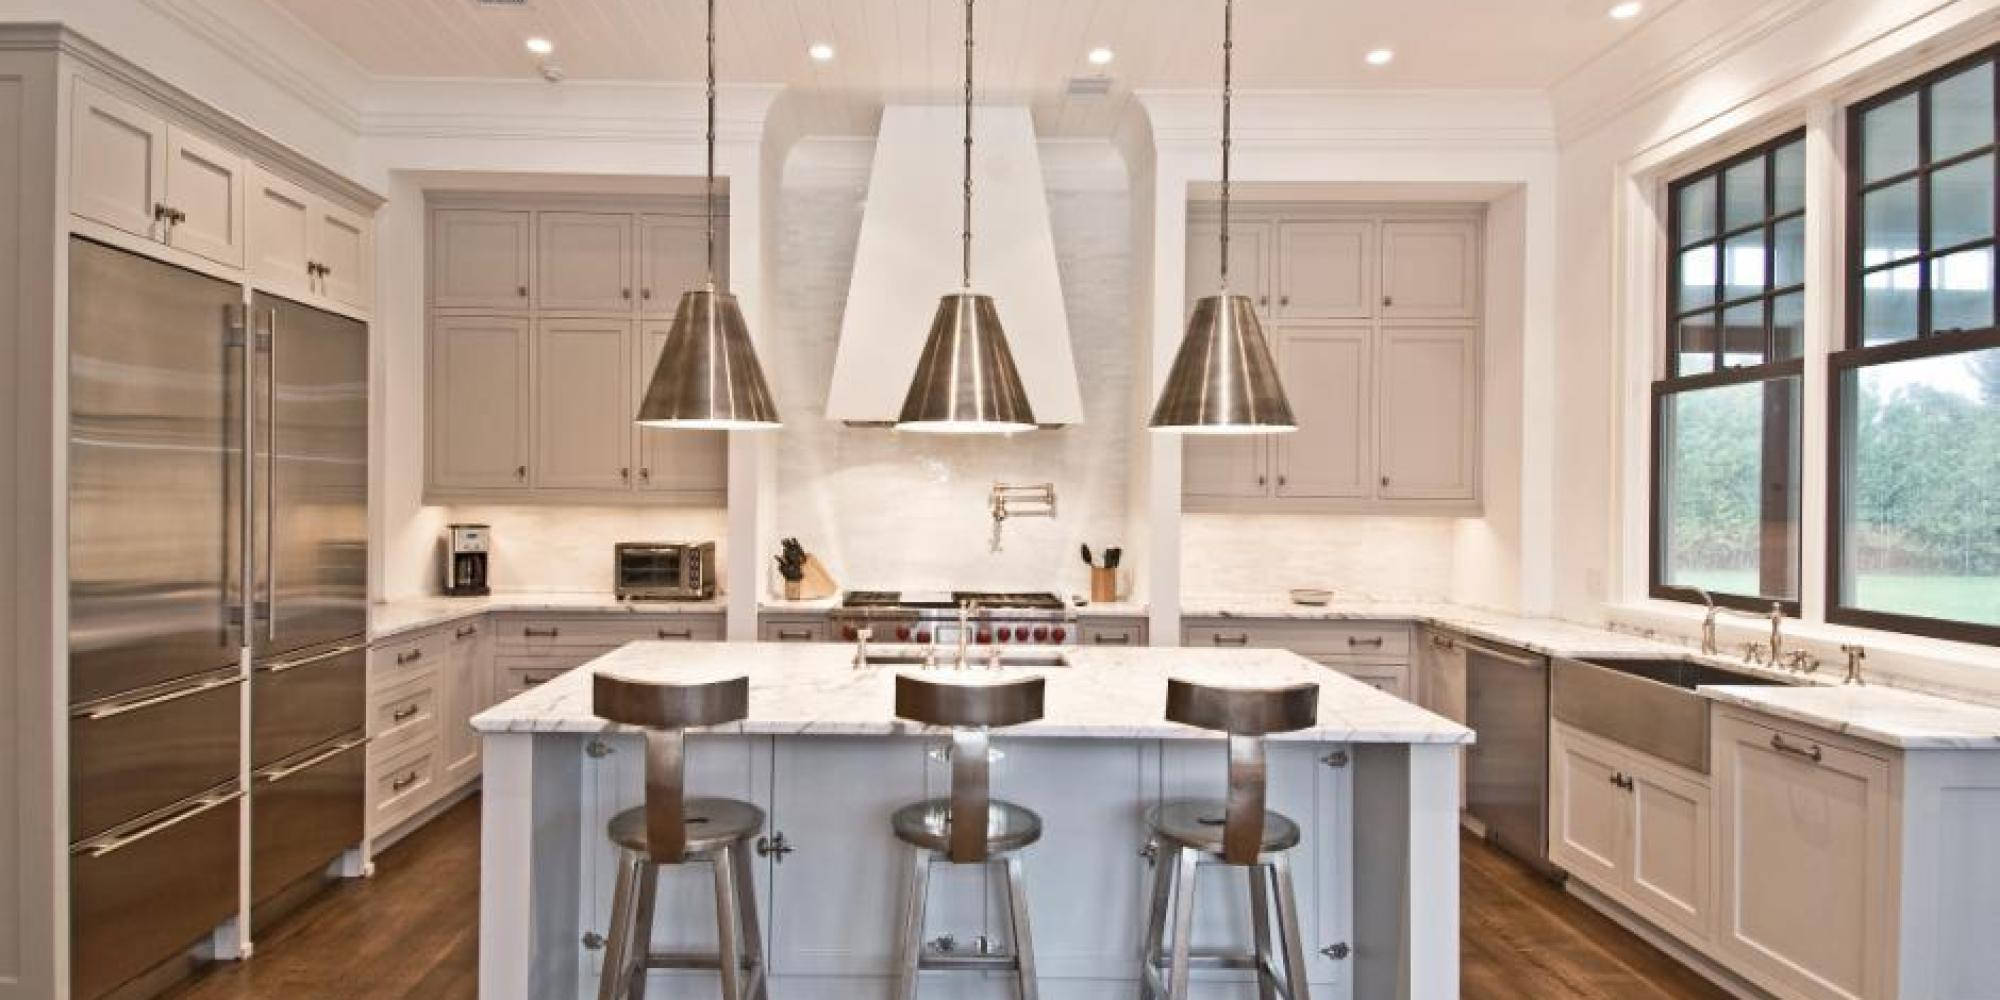 exceptional Best Paint Color For Kitchen With White Cabinets #1: Huffington Post